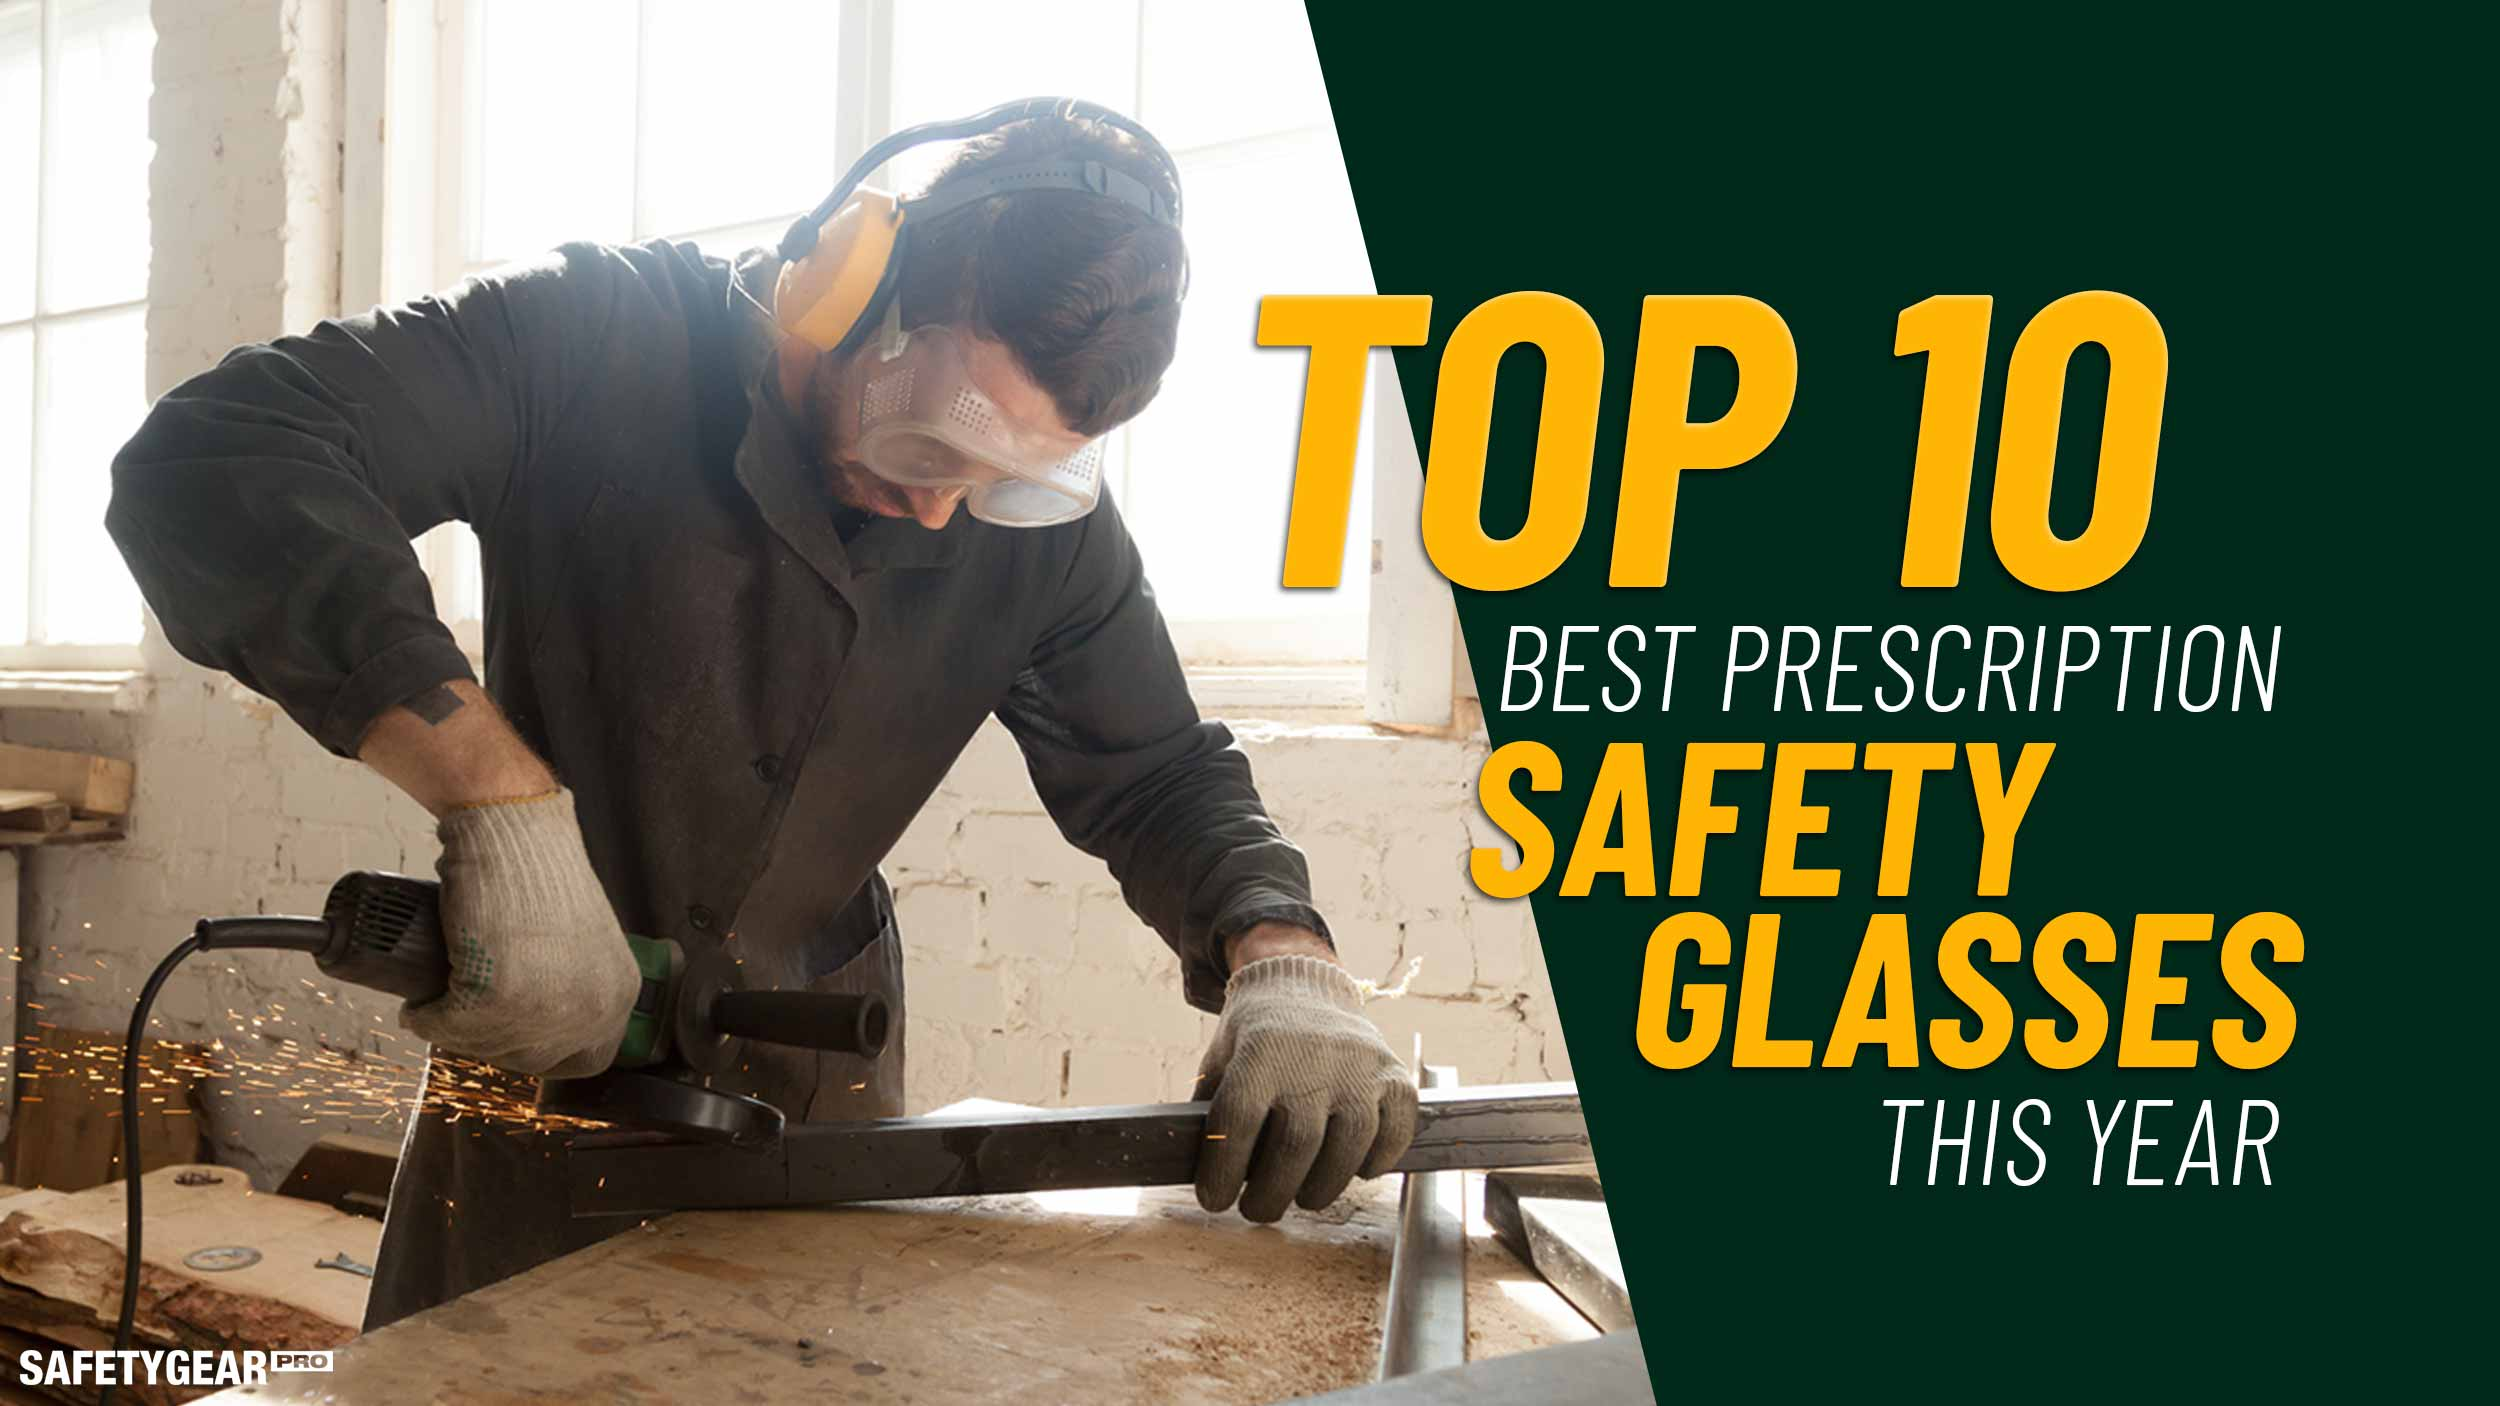 Top 10 best prescription safety glasses